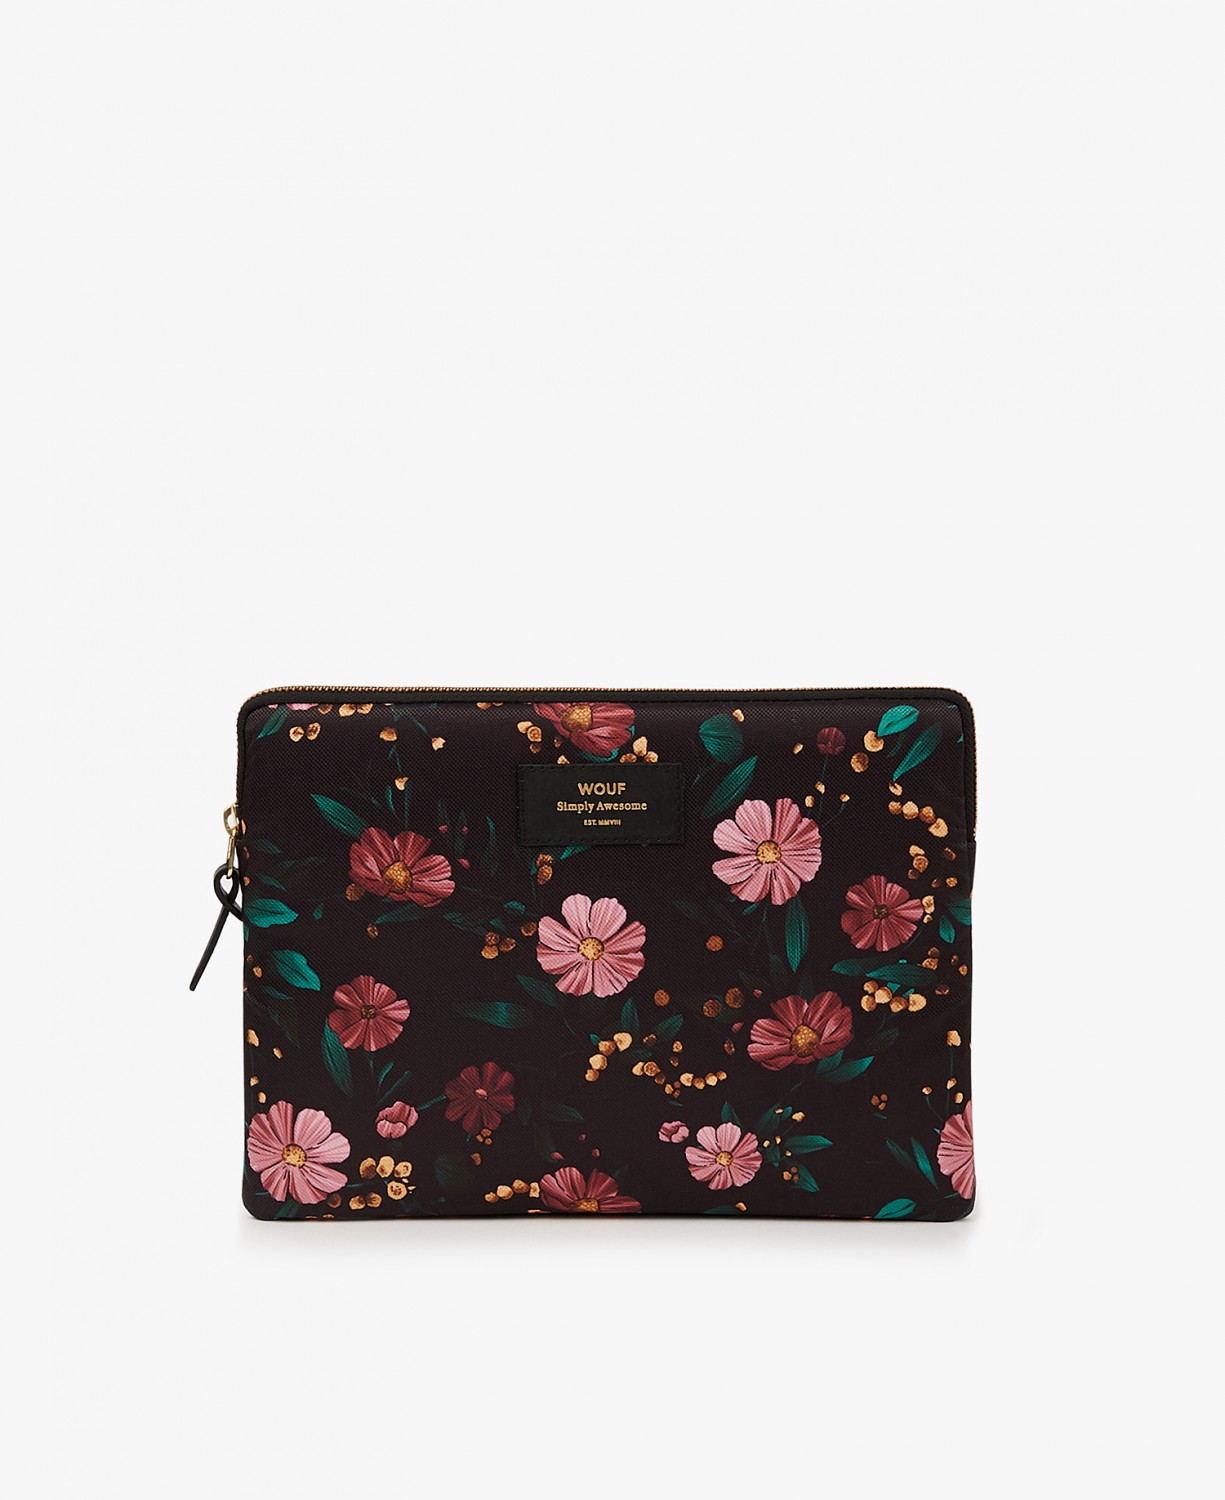 WOUF | Black Flowers iPad sleeve